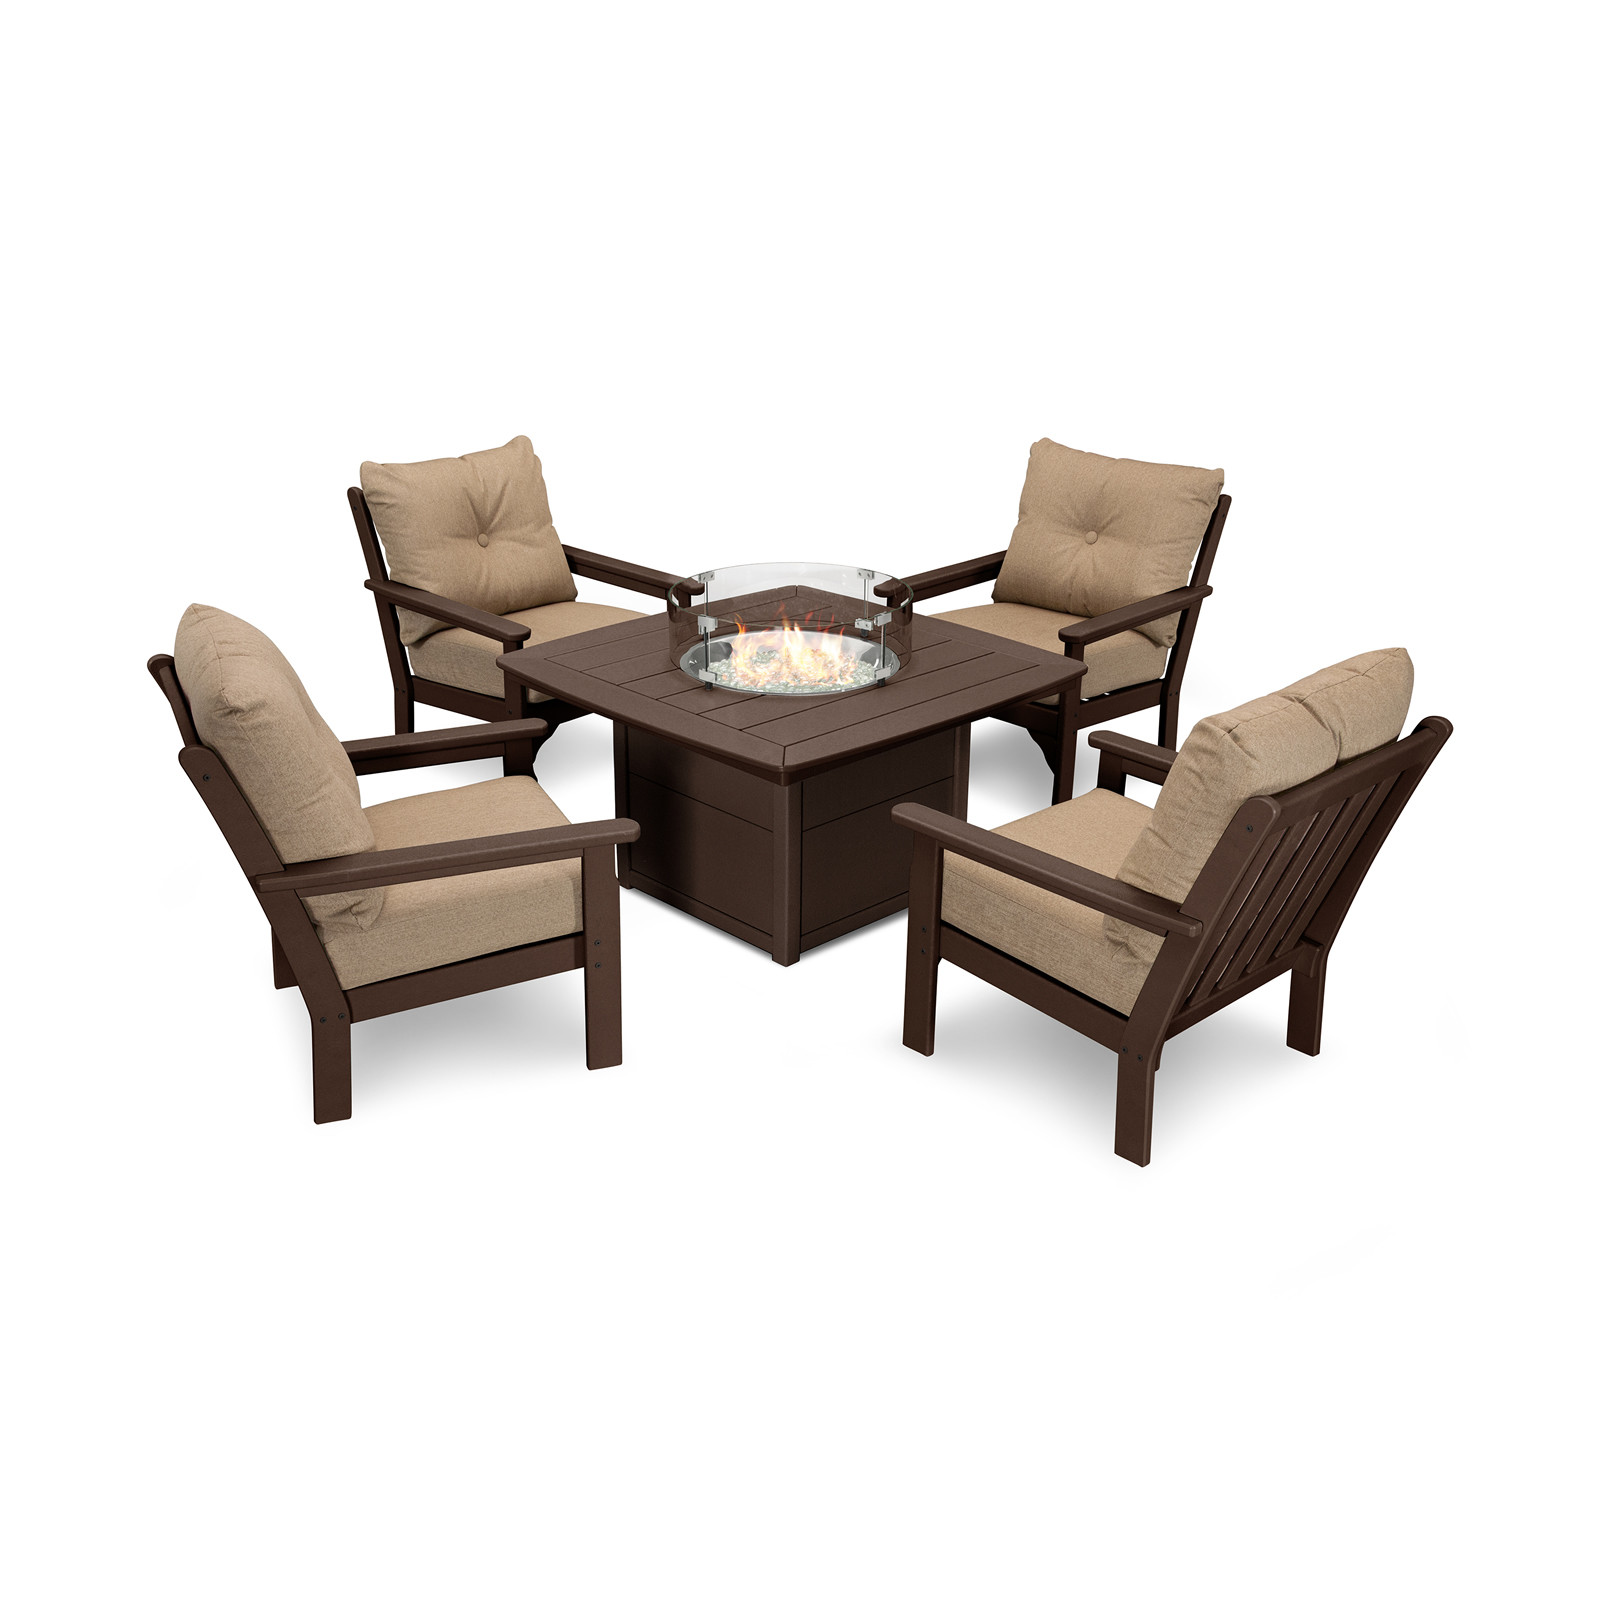 POLYWOOD Vineyard 5-pc Conversation Set with Fire Pit Table